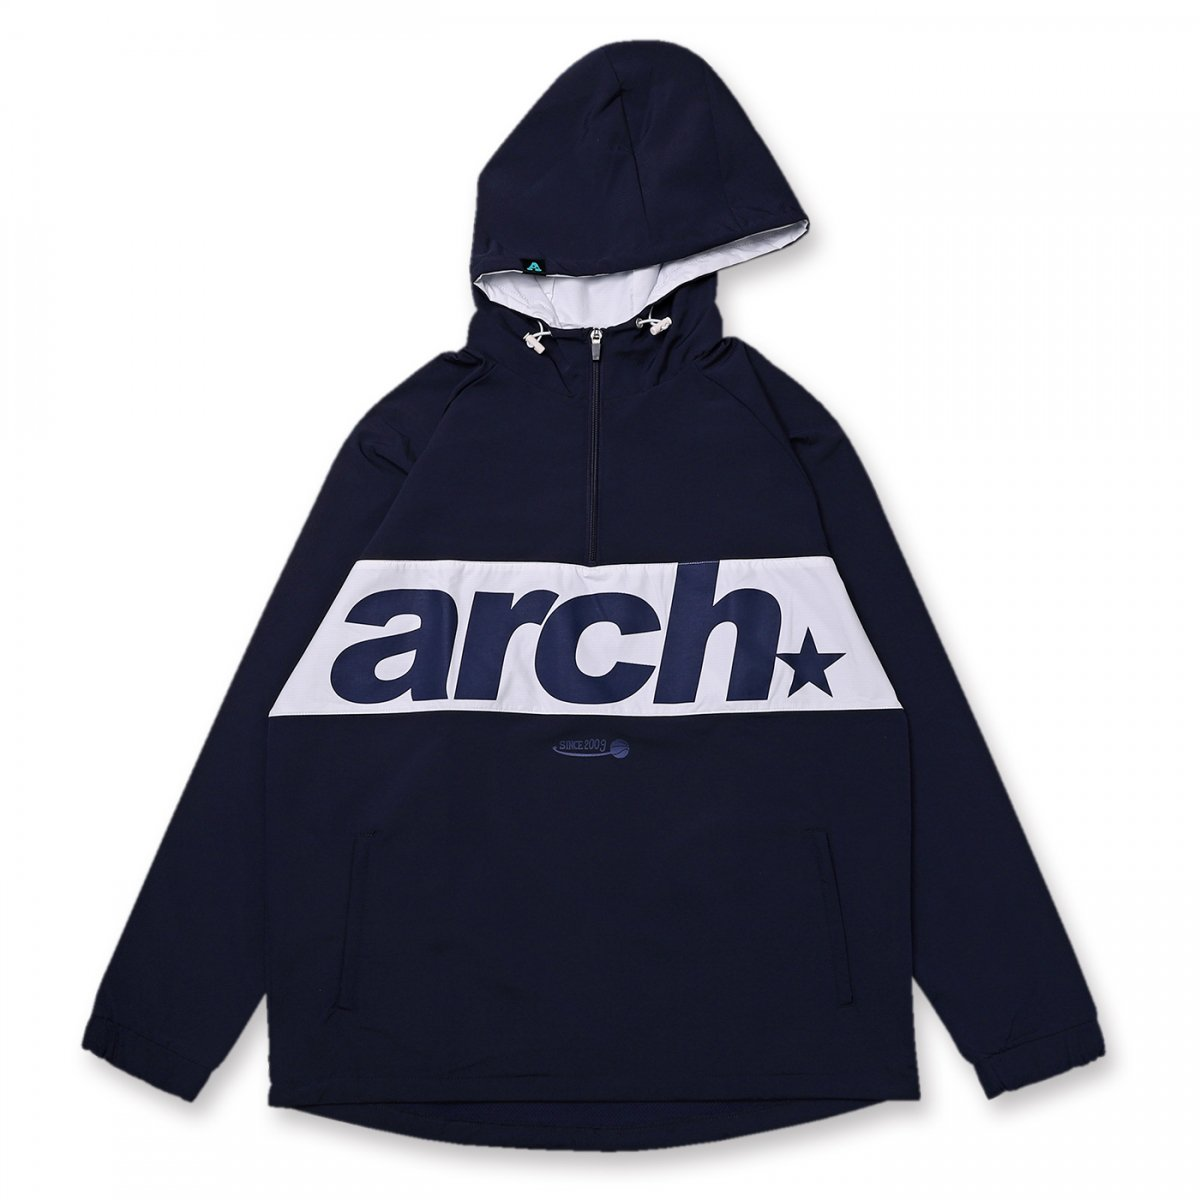 sporty logo anorak jacket【navy】